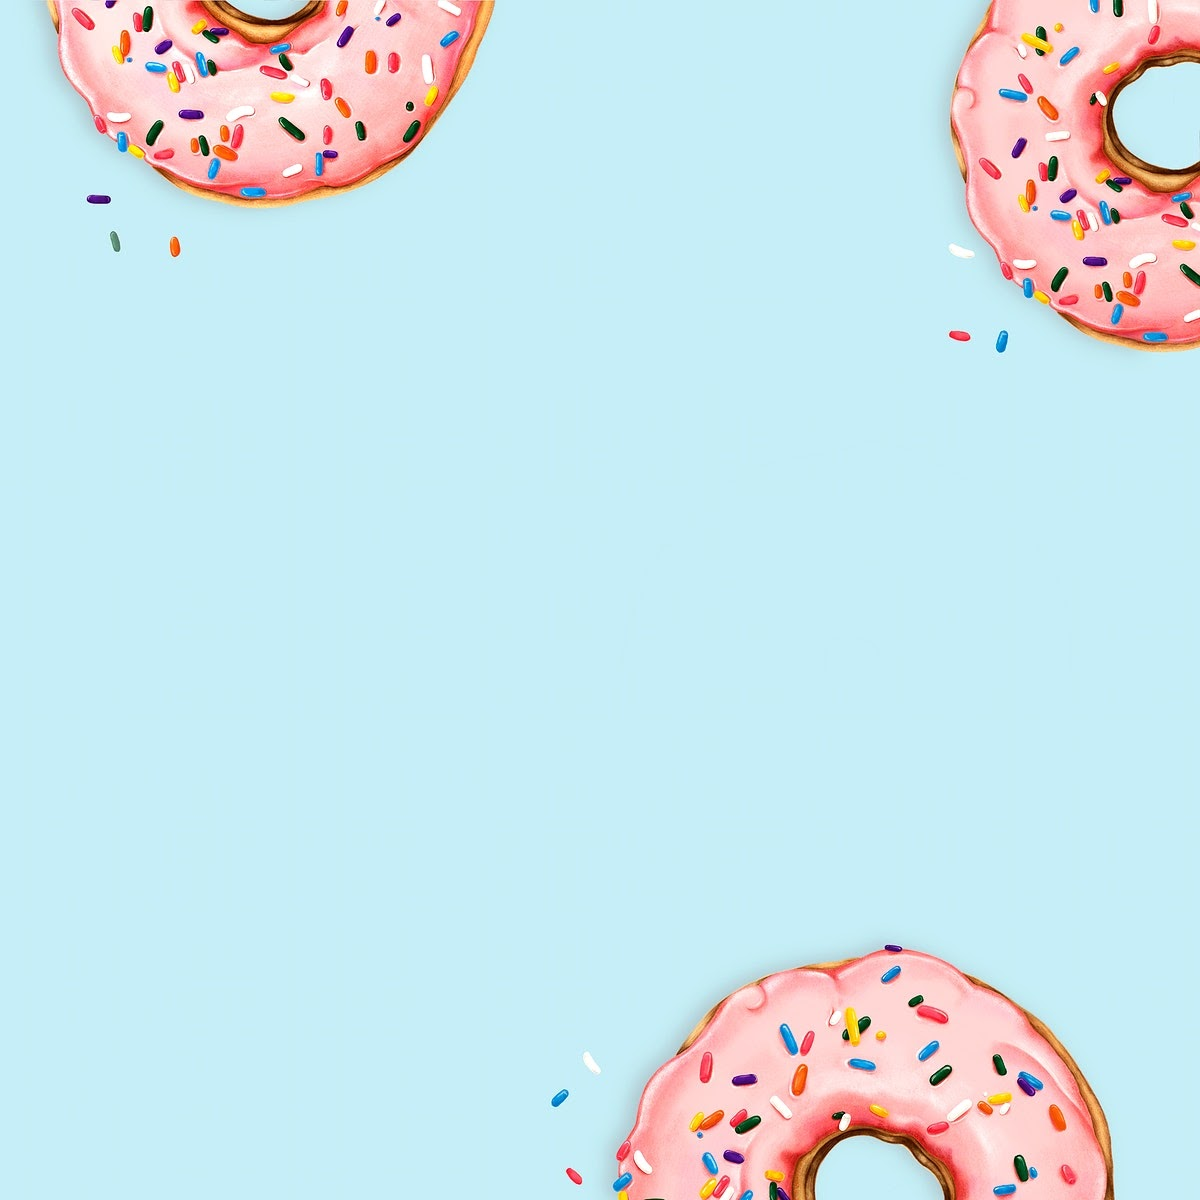 Download Free 4580+ Mockup Donut Yellowimages Mockups for Cricut, Silhouette and Other Machine